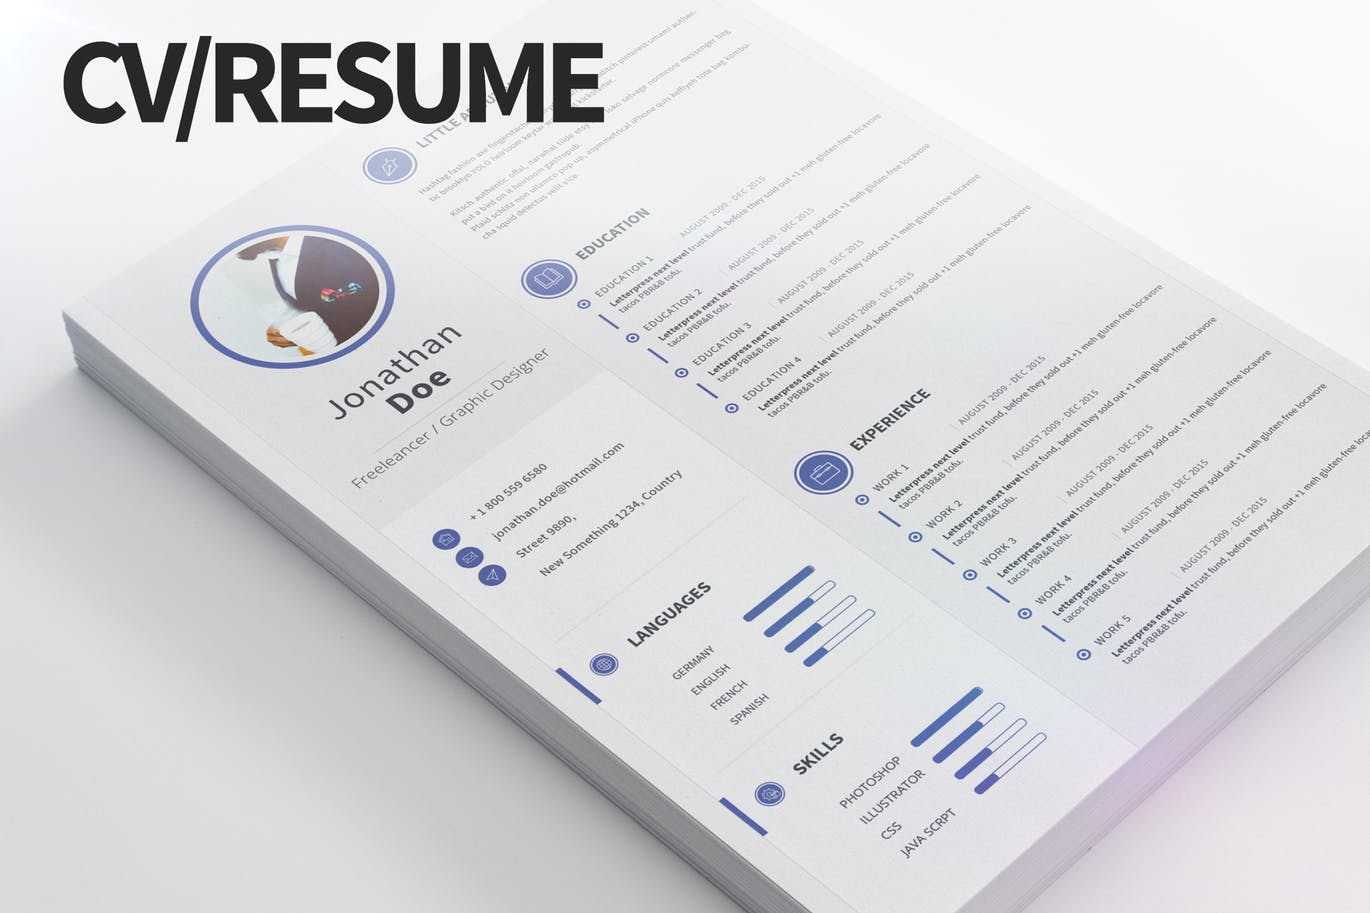 template resume free a resume template best cv resume templates of